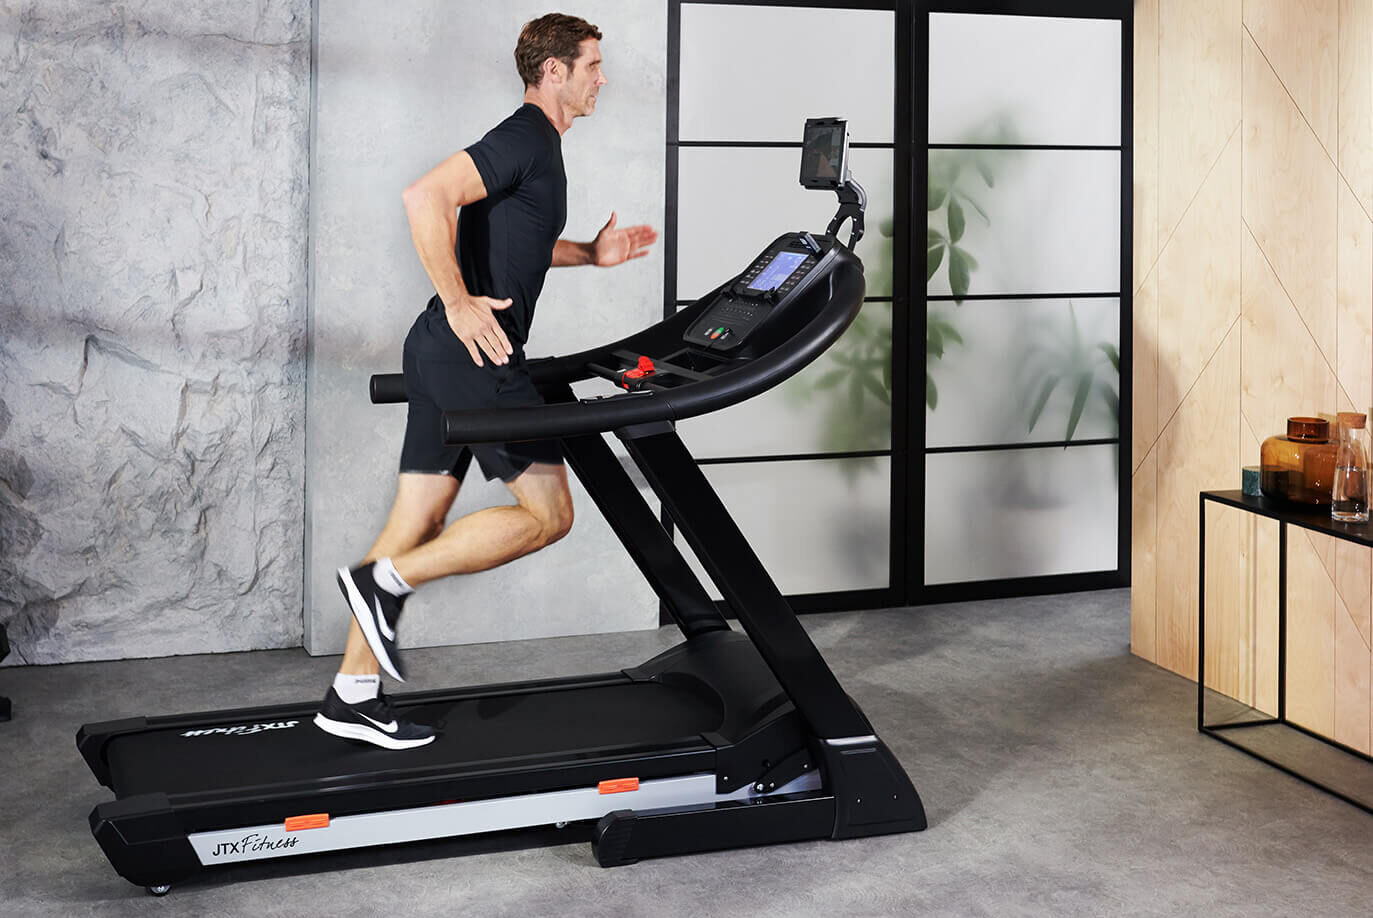 Pro Treadmill with robust CushionStep™ deck